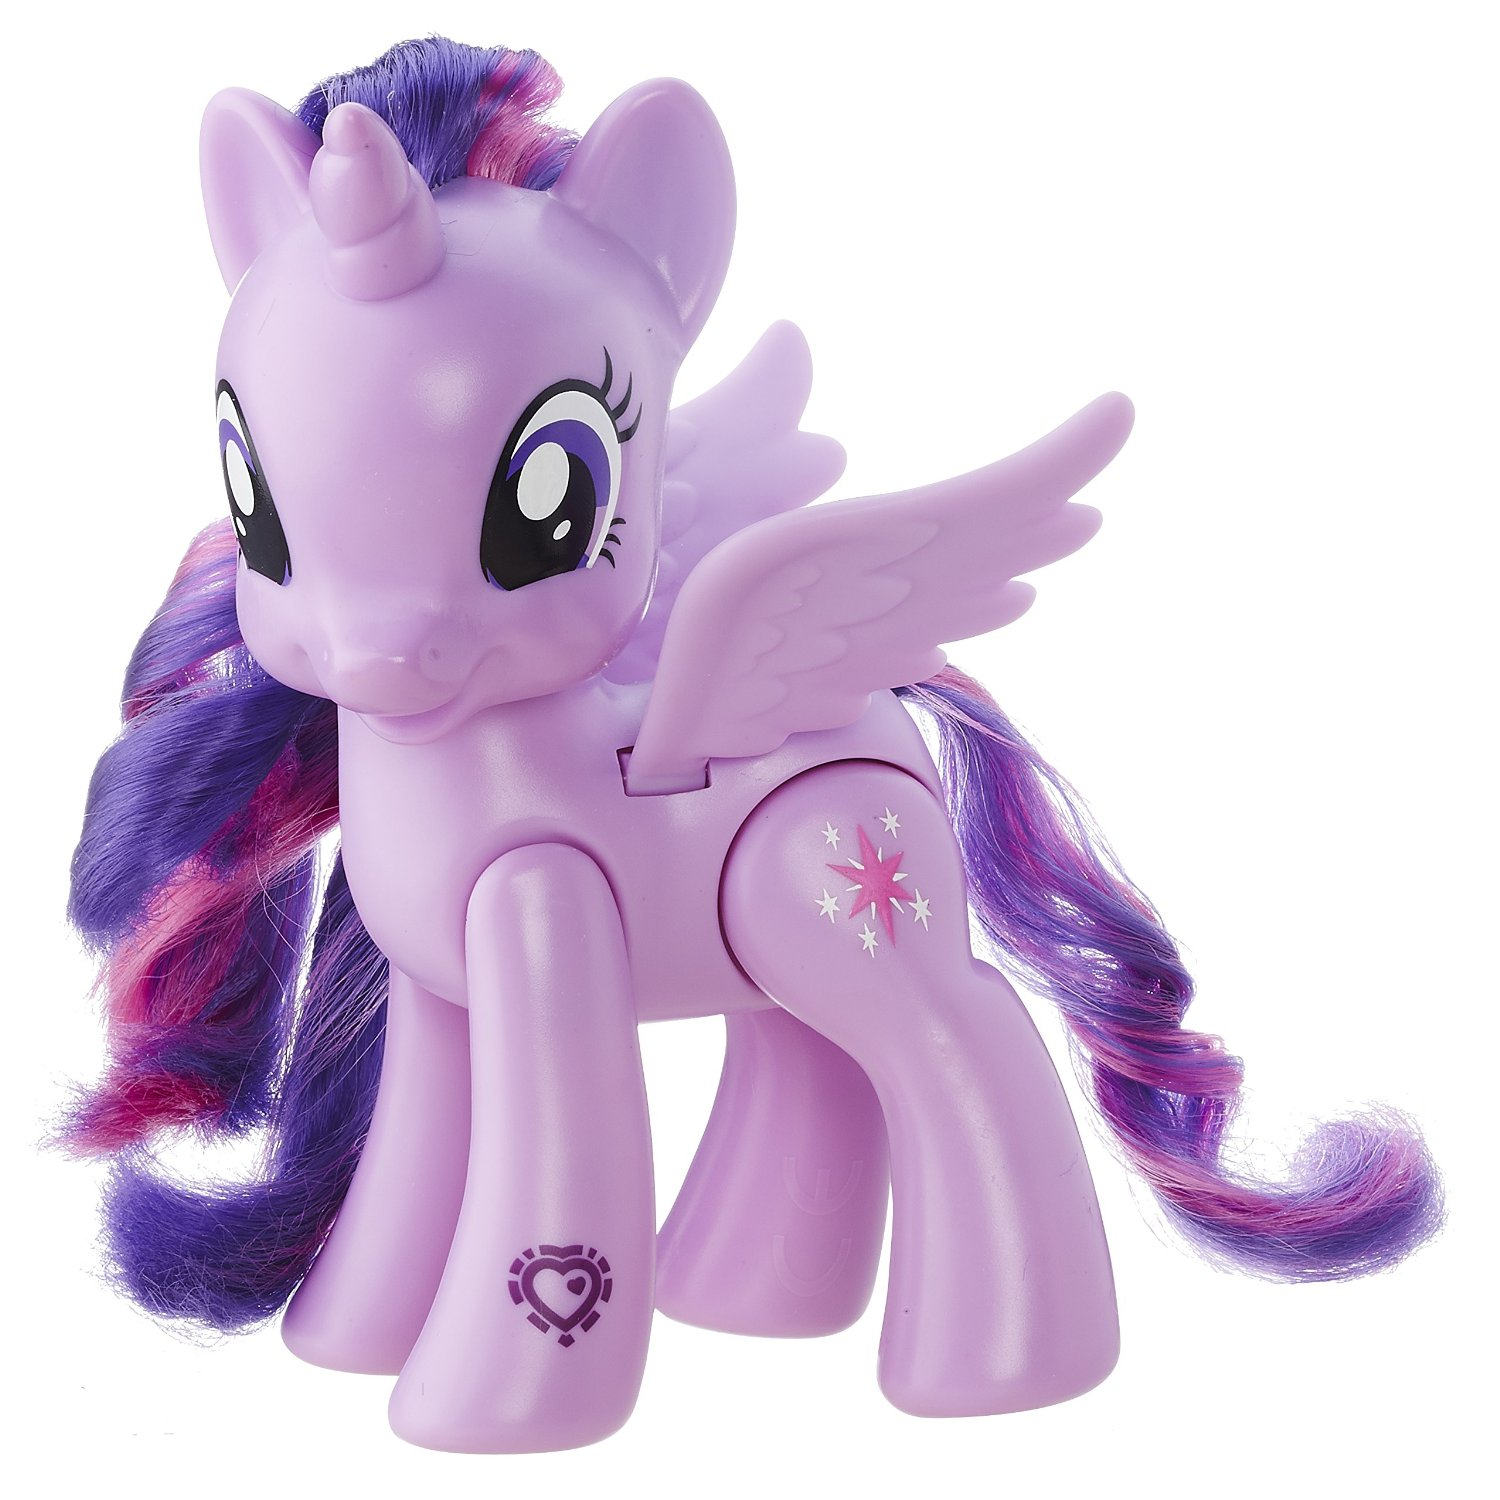 Equestria Daily Mlp Stuff Photo Finish Royal Ribbon And More Explore Equestria Brushable